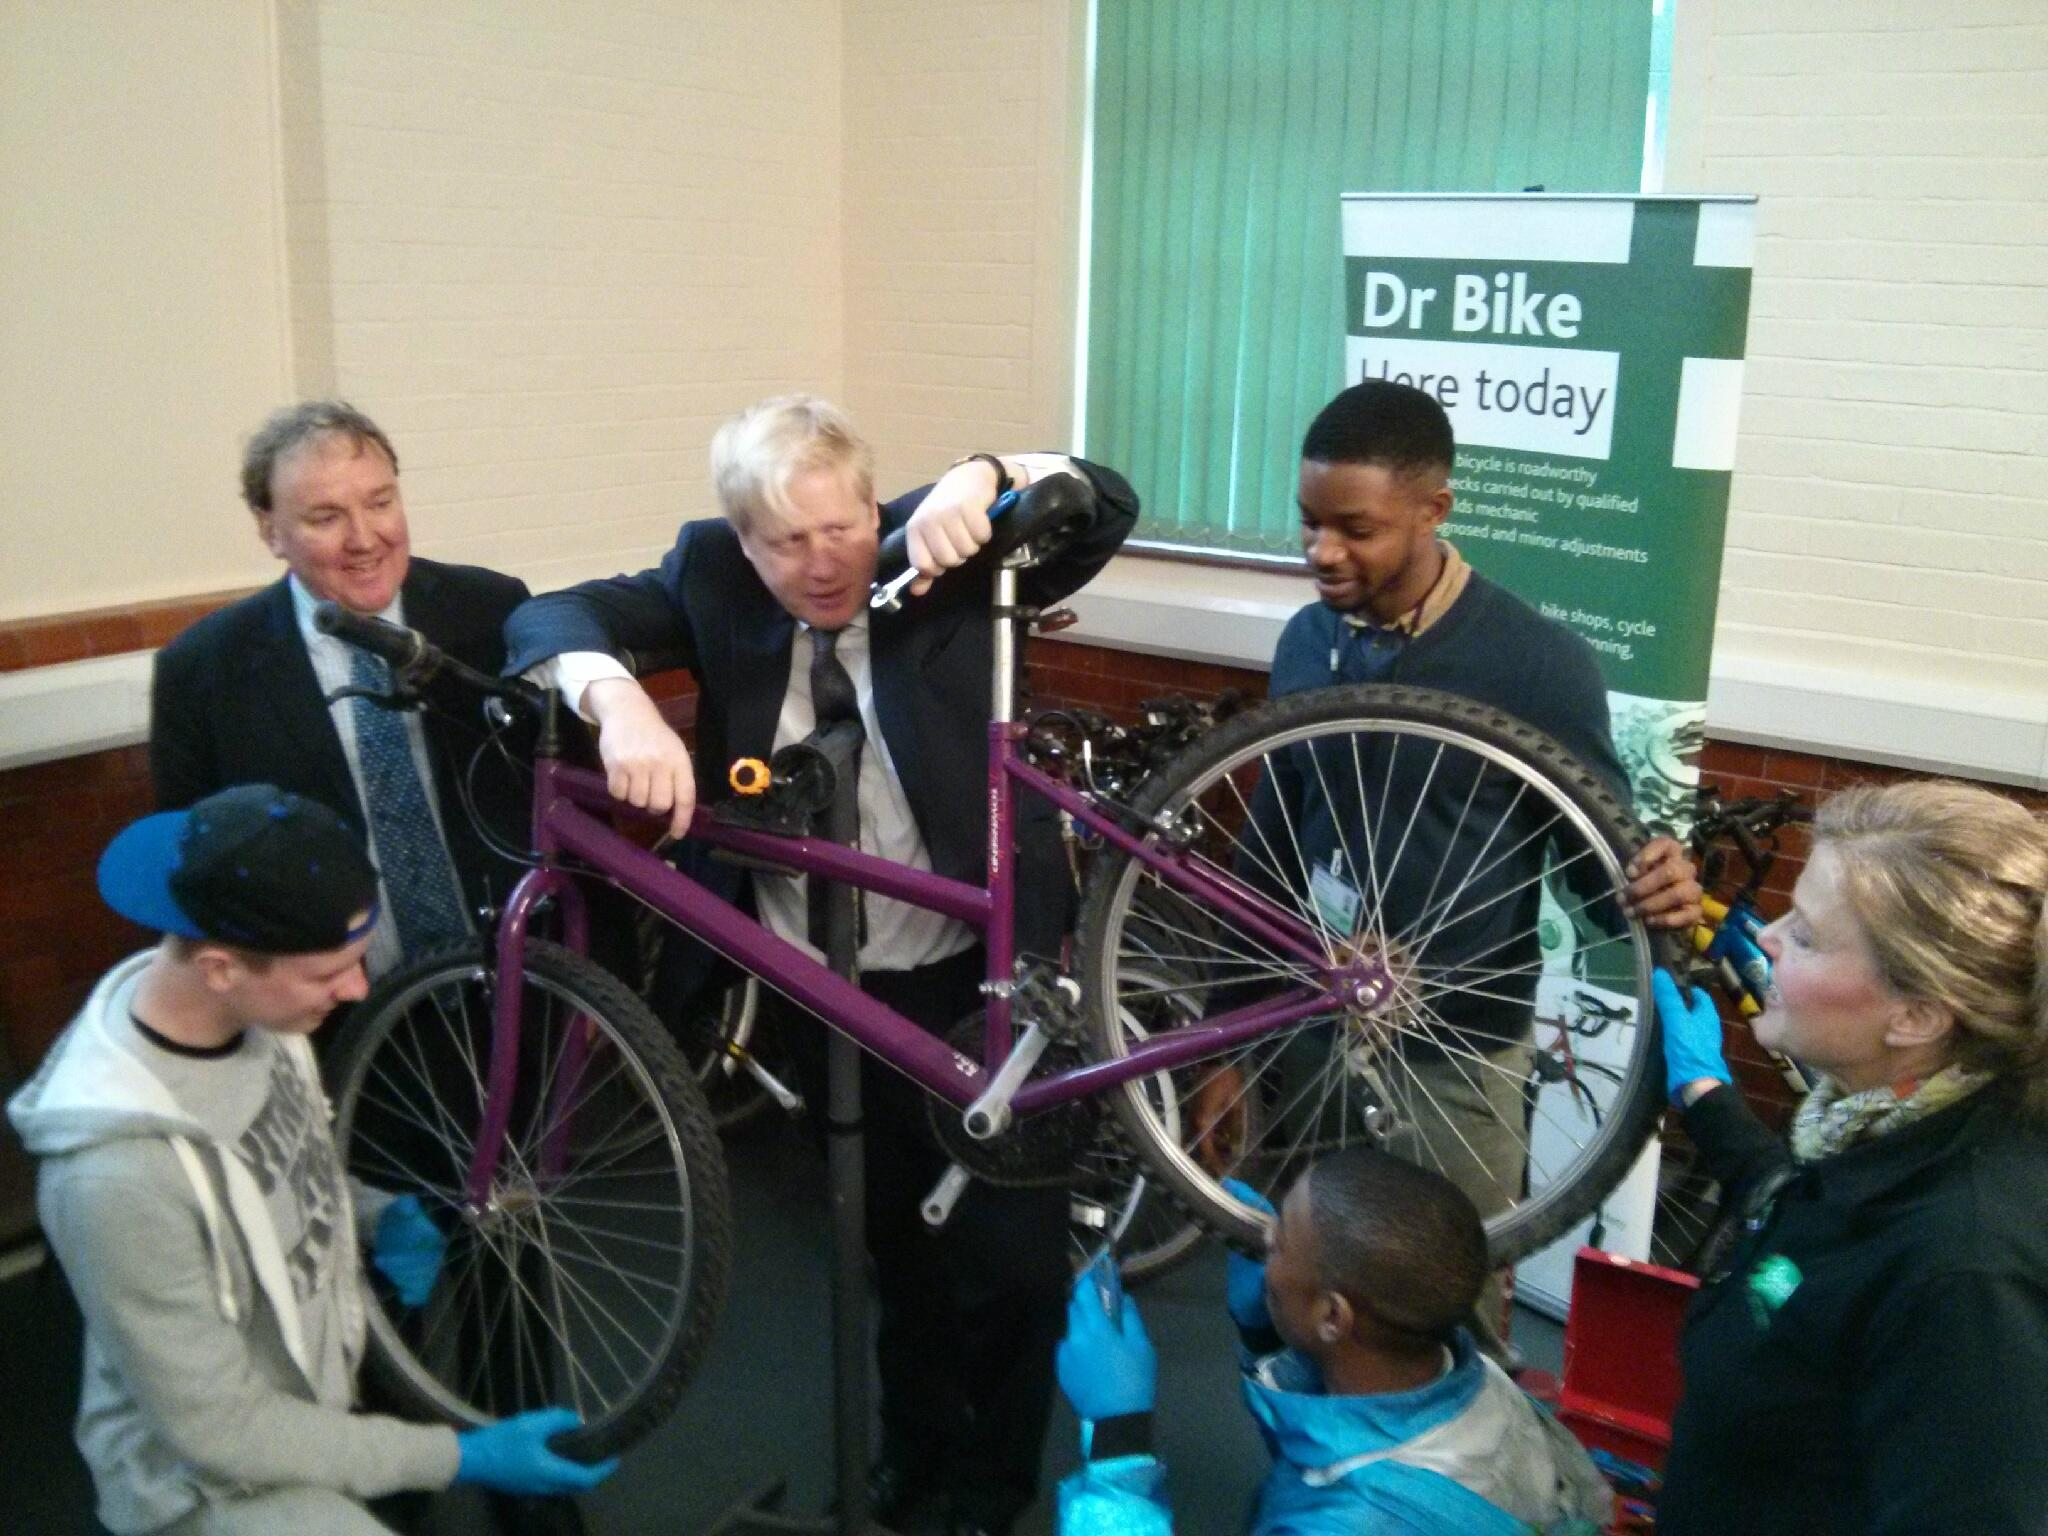 Yesterday I toured @LBofBromley Youth Offending Service & met young offenders fixing up bikes for crime victims http://t.co/P2xbnDqEKg